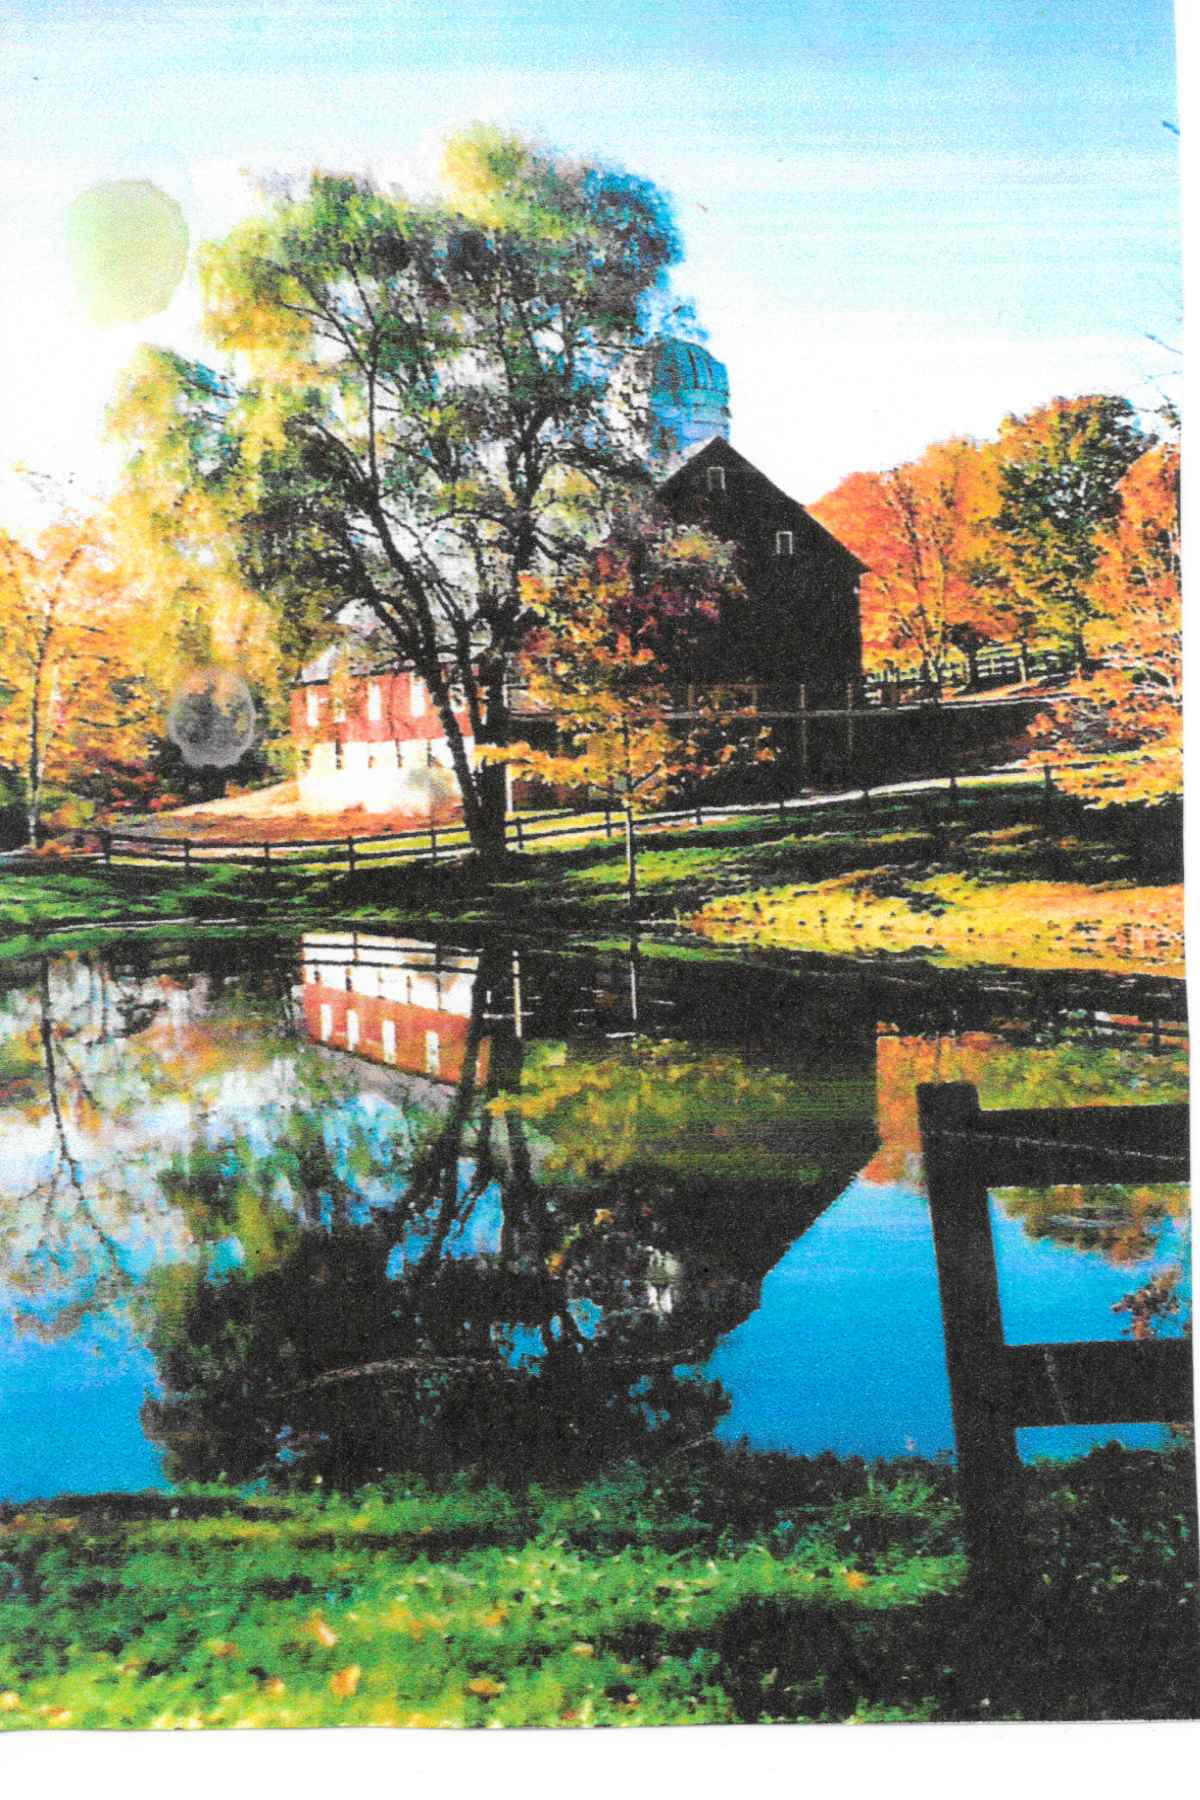 Chanteclaire Farm in the early 2000s